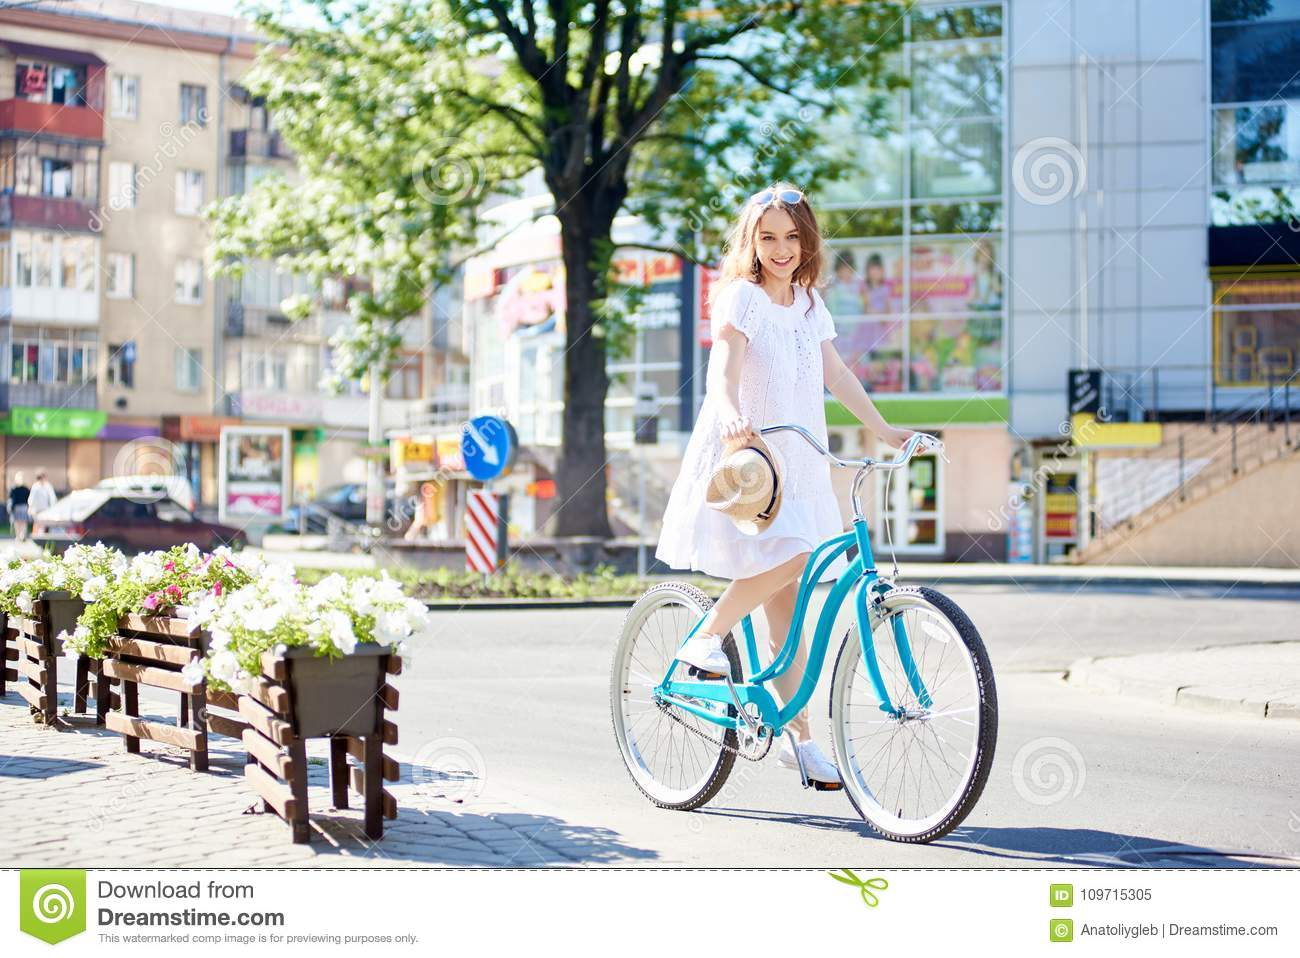 Smiling young female in white dress riding blue bike in front of modern city buildings on summer day